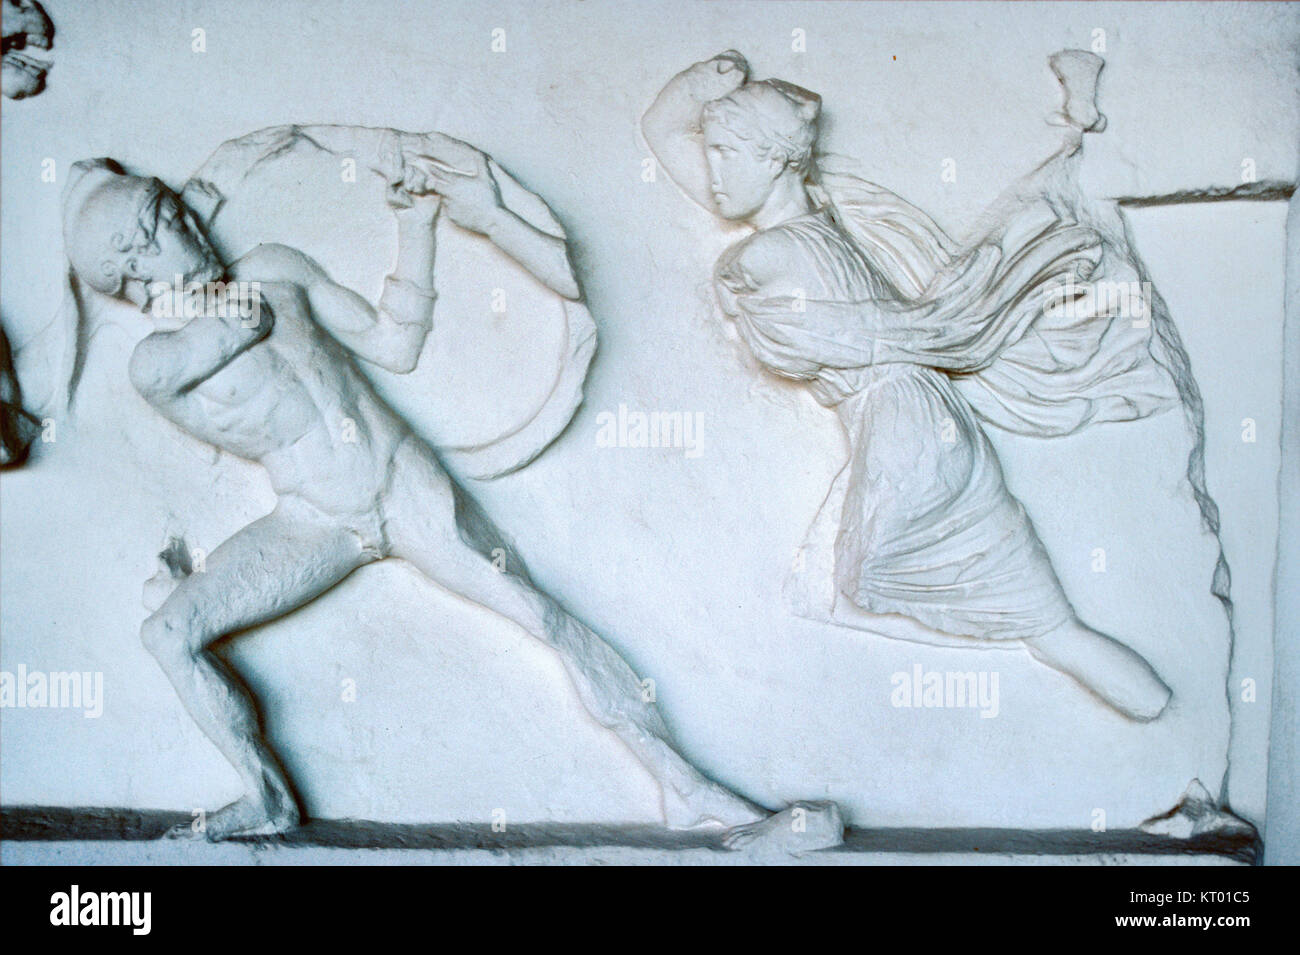 Amazon Frieze or Amazonomachy, Showing Battle Between Greeks and Amazons (353-350 BC) from the Mausoleum at Halicarnassus Stock Photo